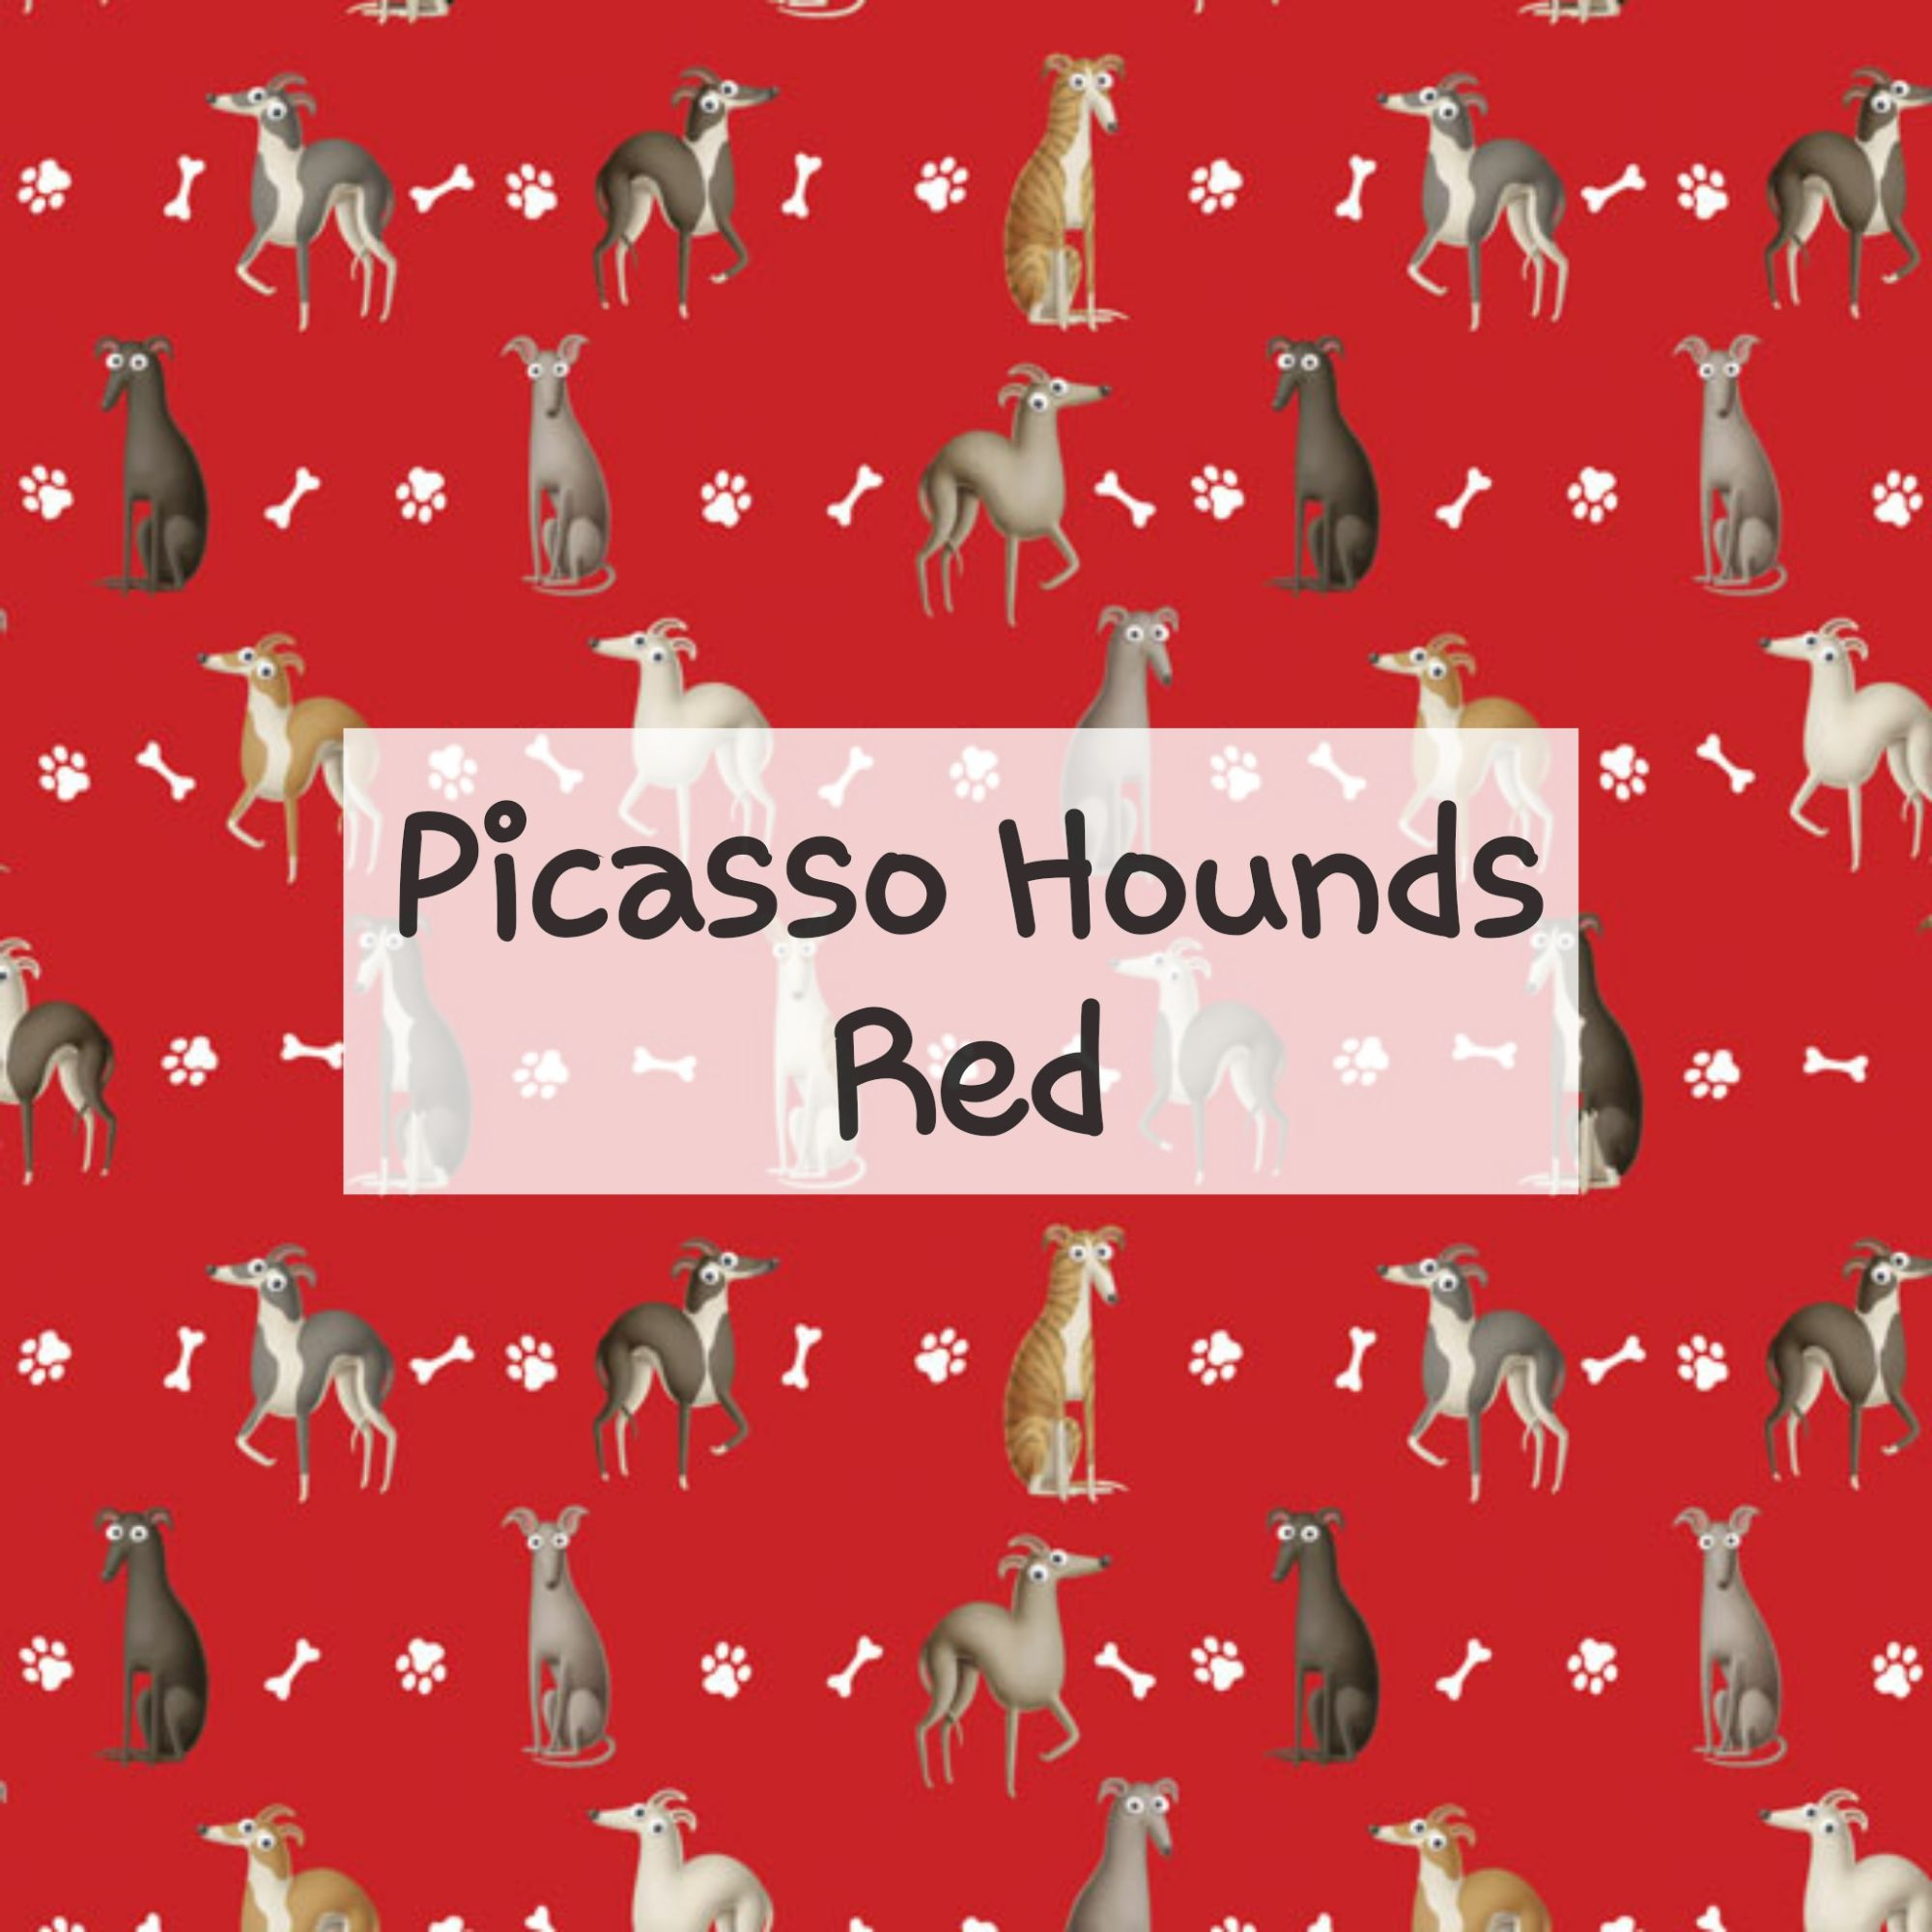 Picasso Hounds Red